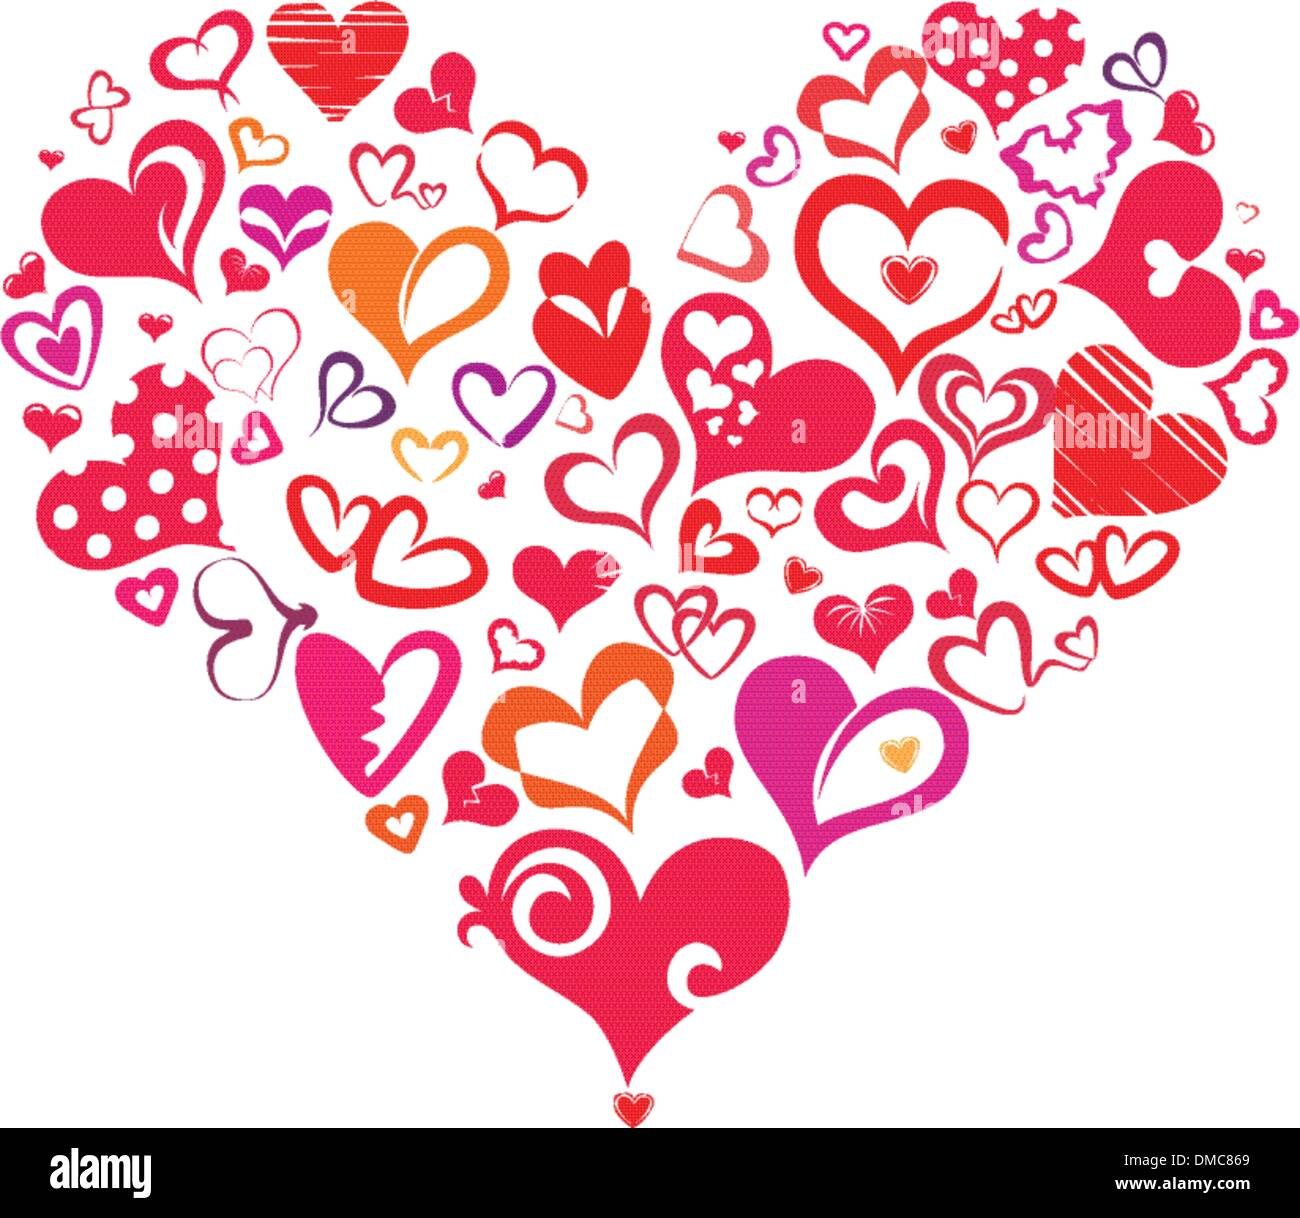 Heart Symbols Stock Vector Images Alamy